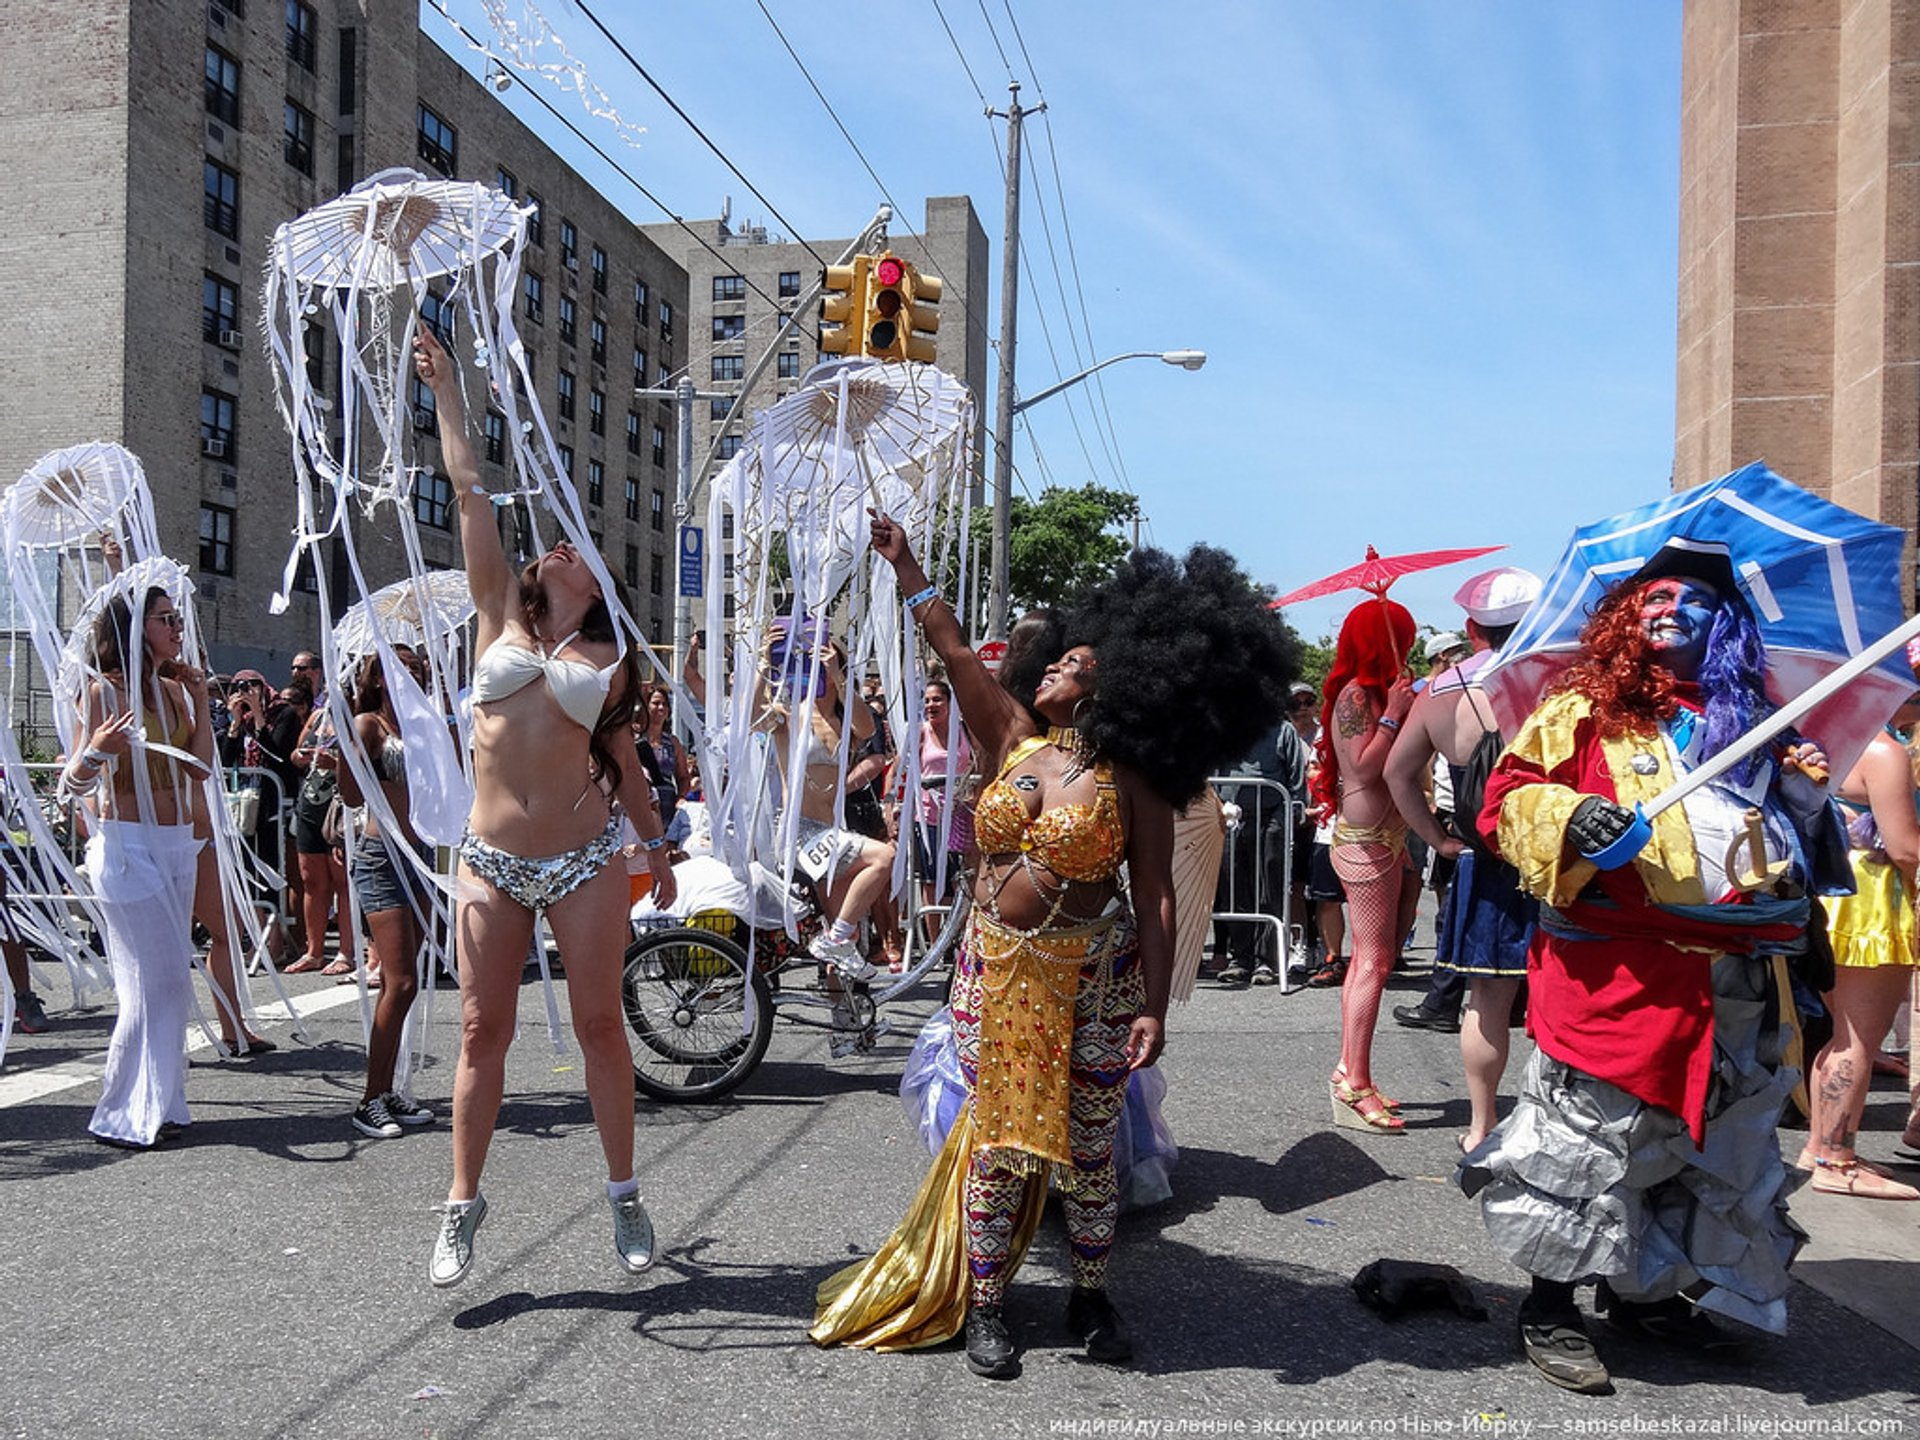 Coney Island Mermaid Parade in New York - Best Season 2020